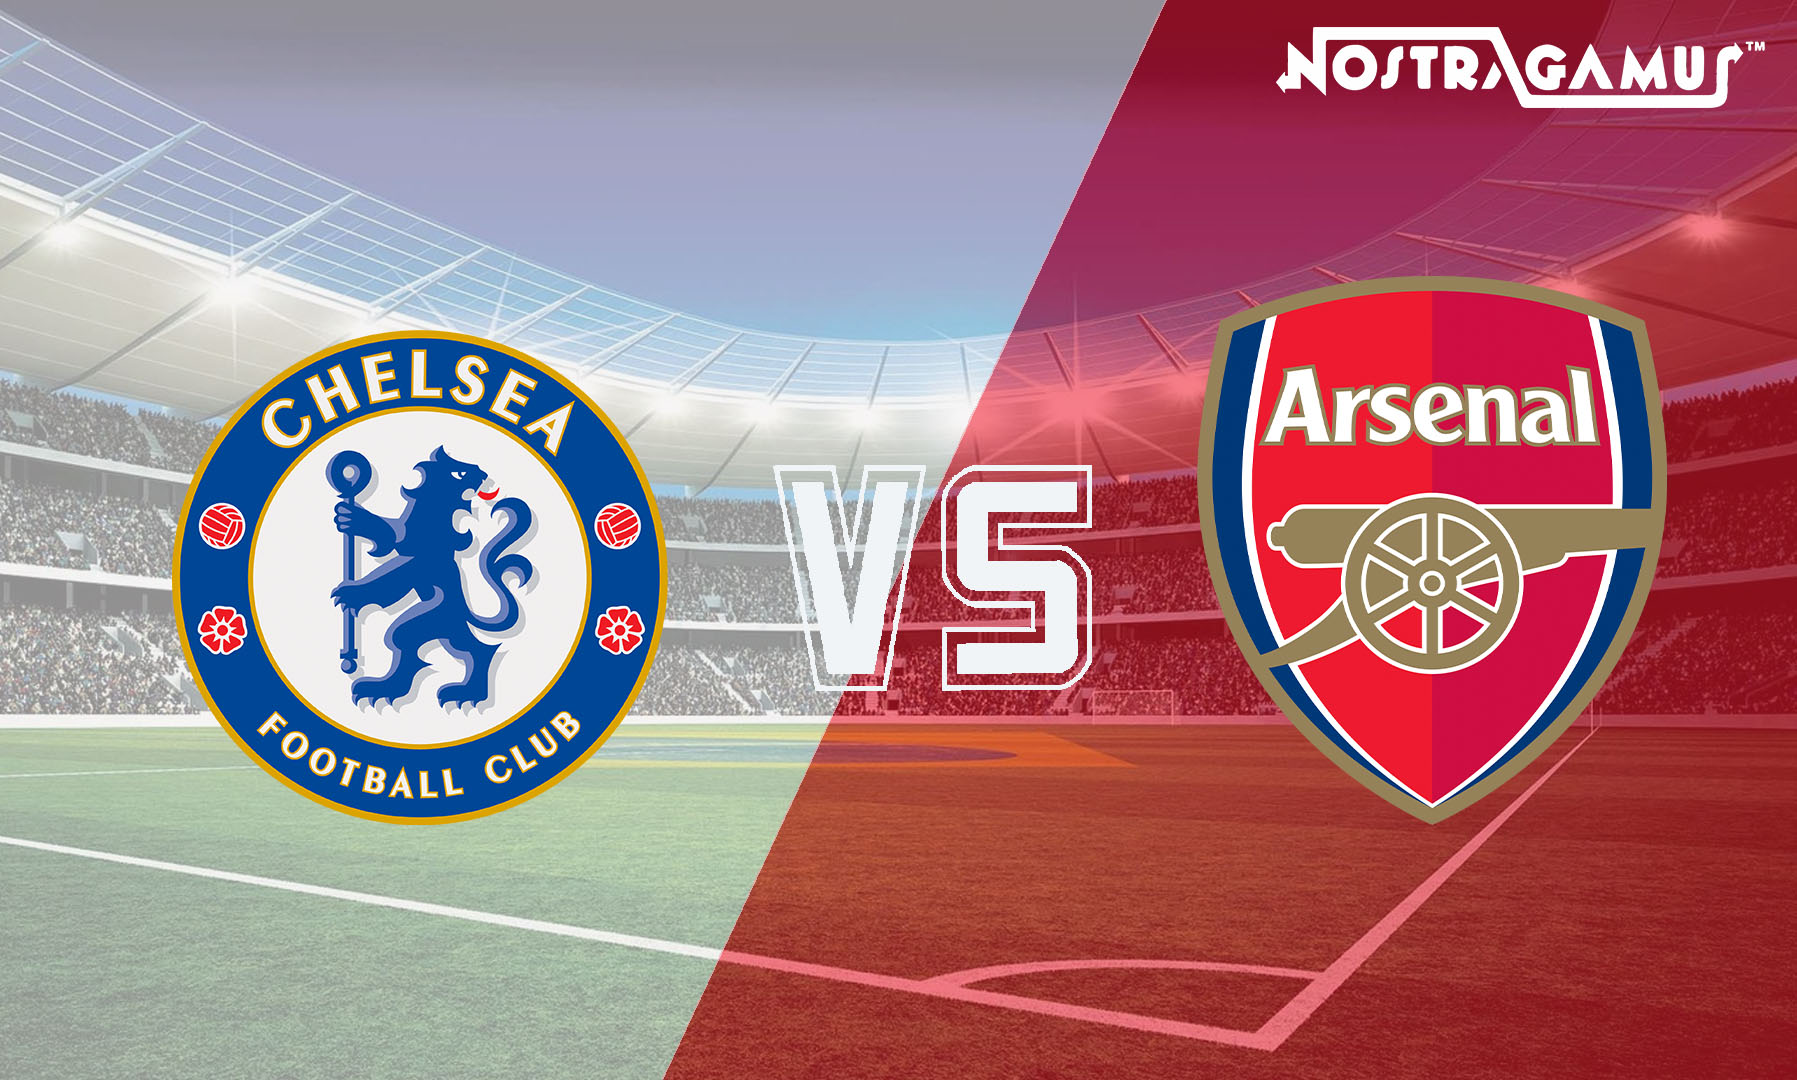 EPL Predictions 2019: Chelsea vs Arsenal